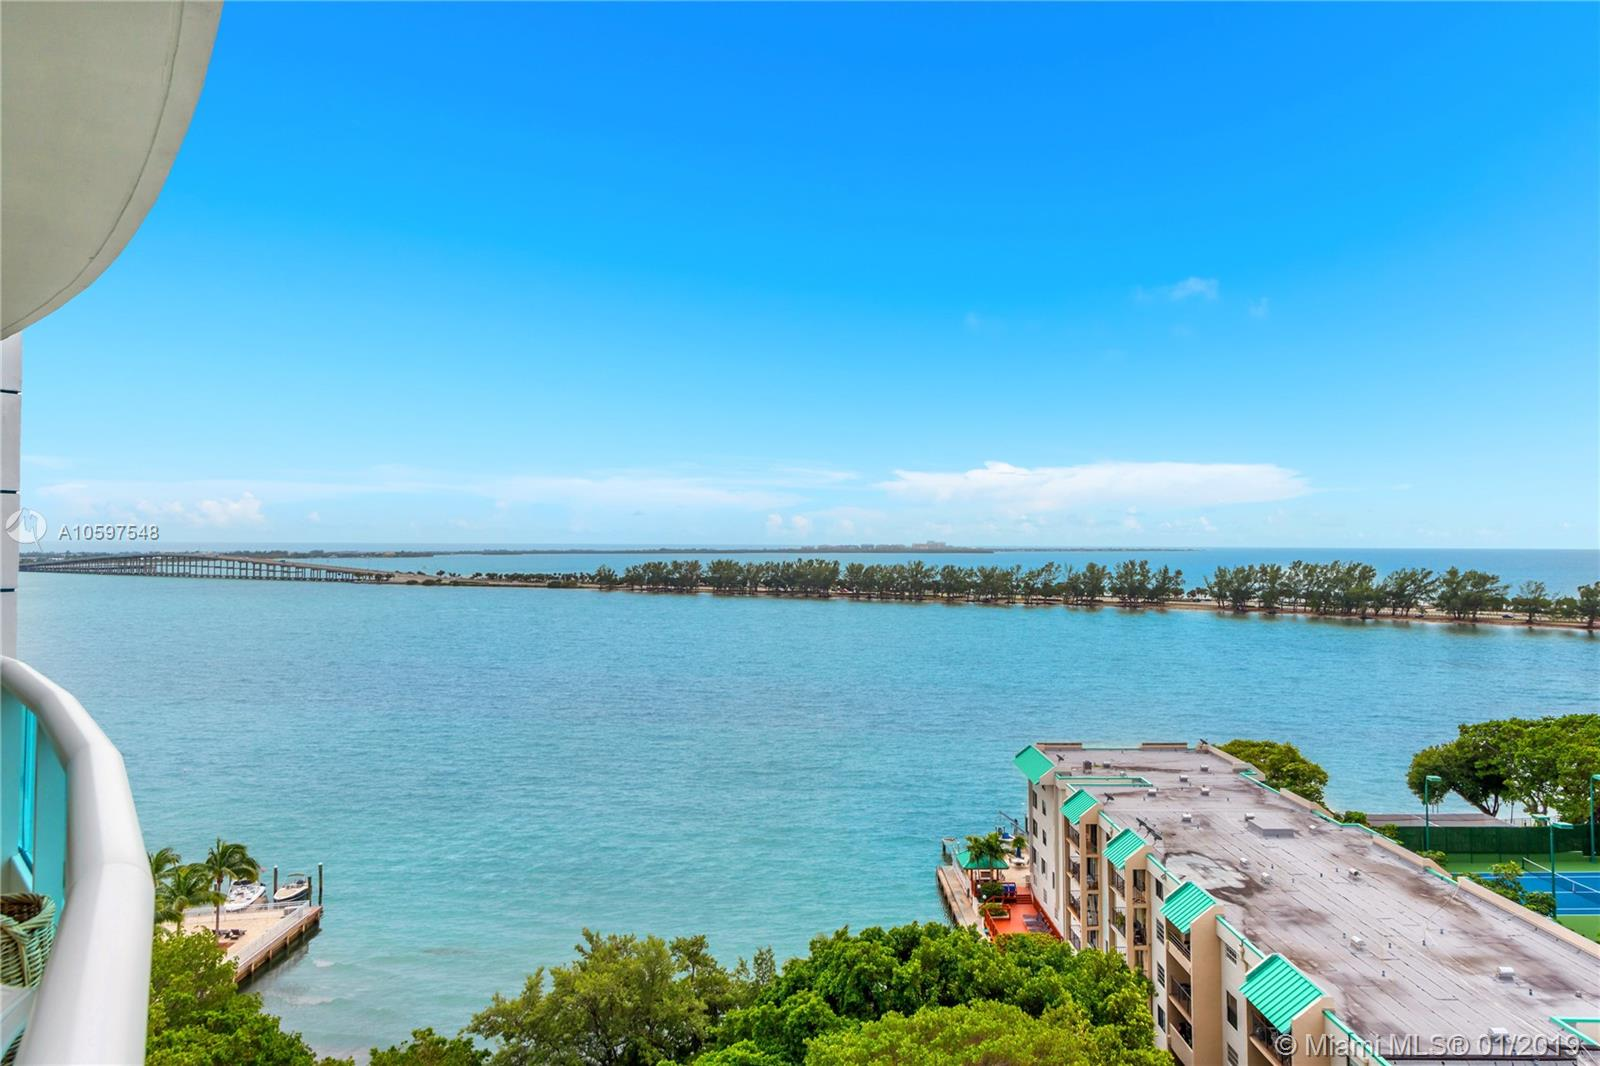 2127 Brickell Avenue, Miami, FL 33129, Bristol Tower Condominium #1402, Brickell, Miami A10597548 image #2